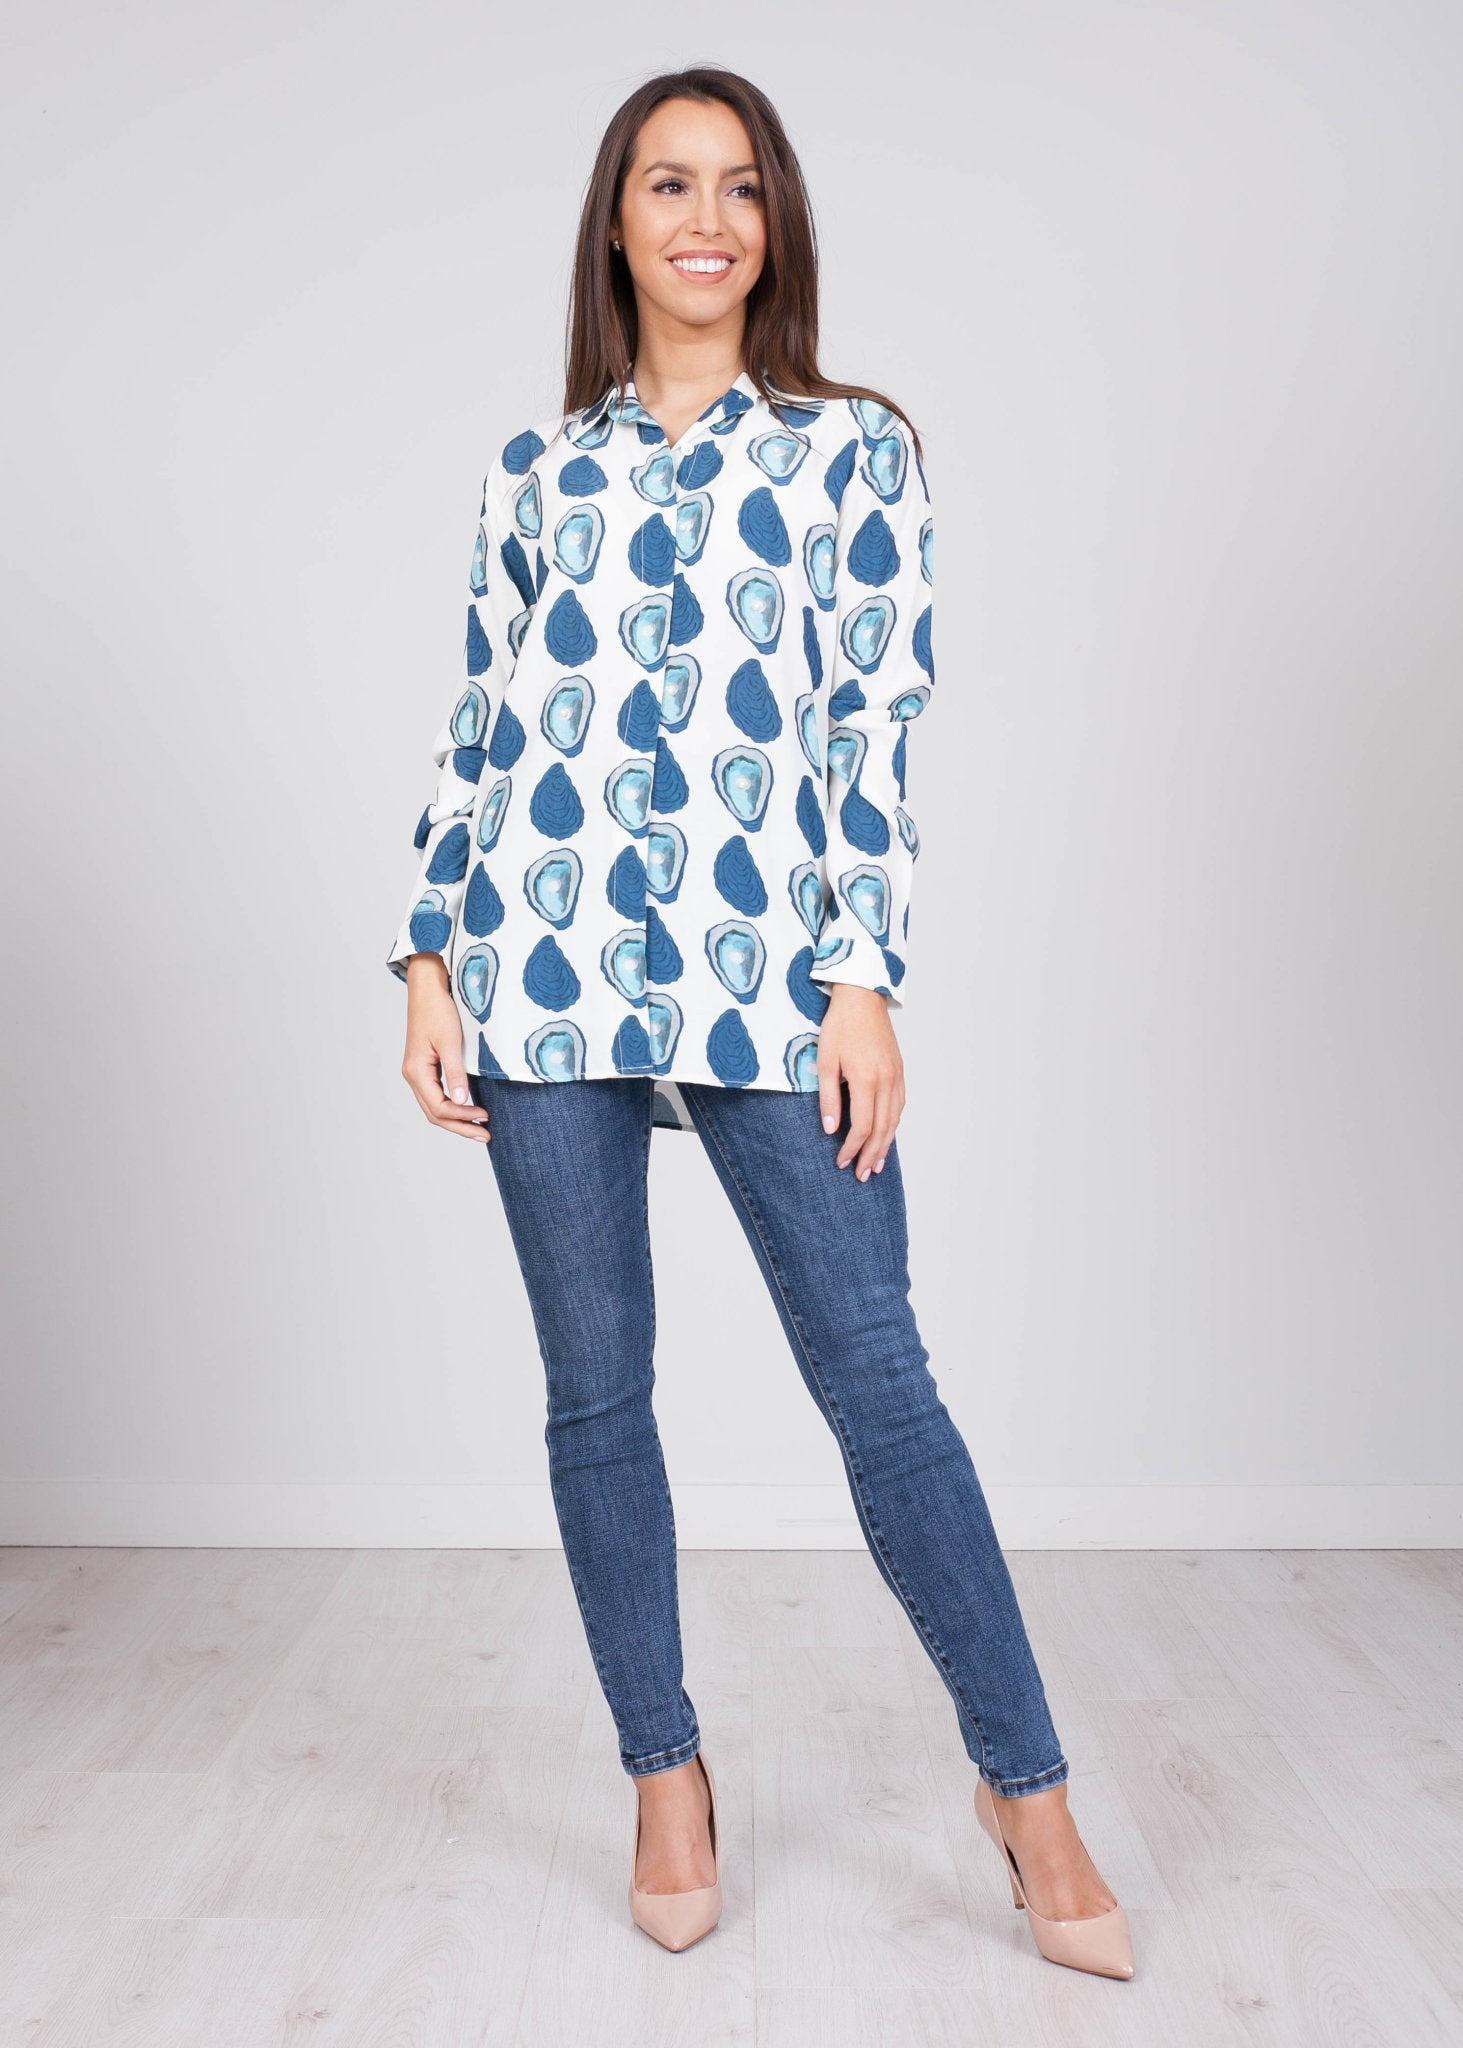 Savannah Blue Printed Blouse - The Walk in Wardrobe